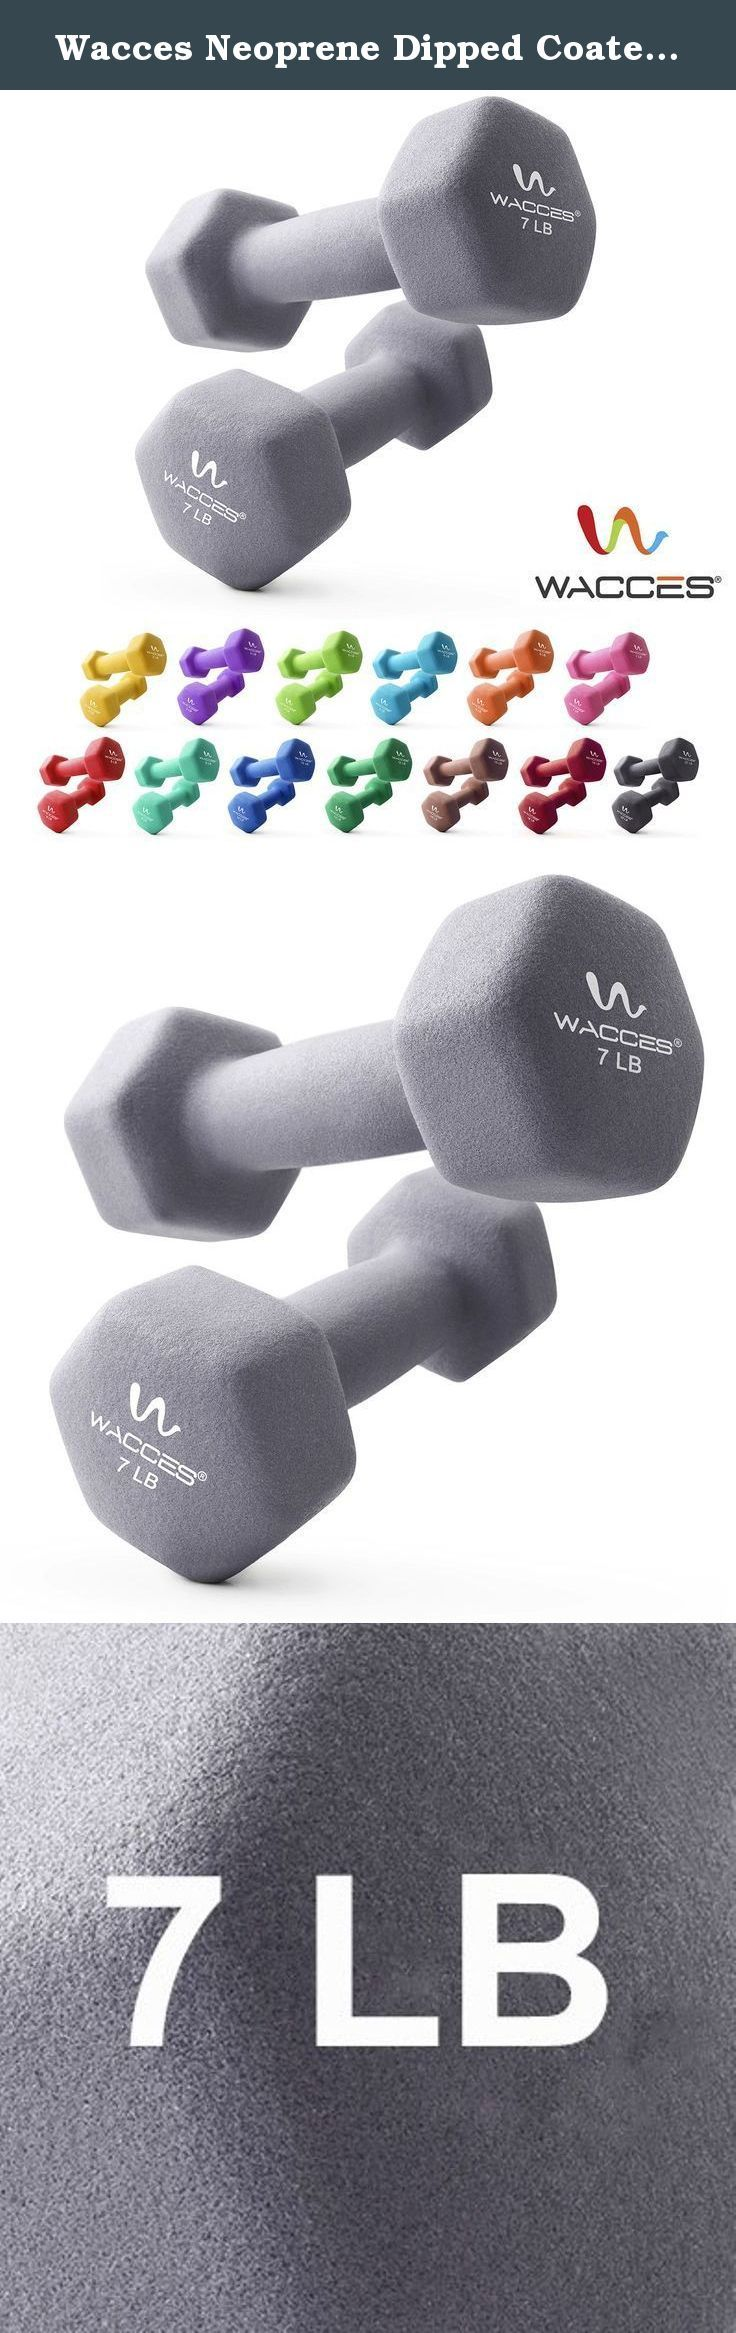 Wacces Neoprene Dipped Coated Set of 2 Dumbbells Hand Weights Sets Non Slip Grip 2 x 7 LB. Product Description The Wacces Neoprene Dumbbells offer a full set of weights for resistance training to help you sculpt muscles and tone them effectively.Whether you perform squats, do lunges or chest presses, using dumbbells also help prevent chronic back and joint pain and are effective for a full body workout. for beginners to working out, allowing you to work your way up gradually as you grow...